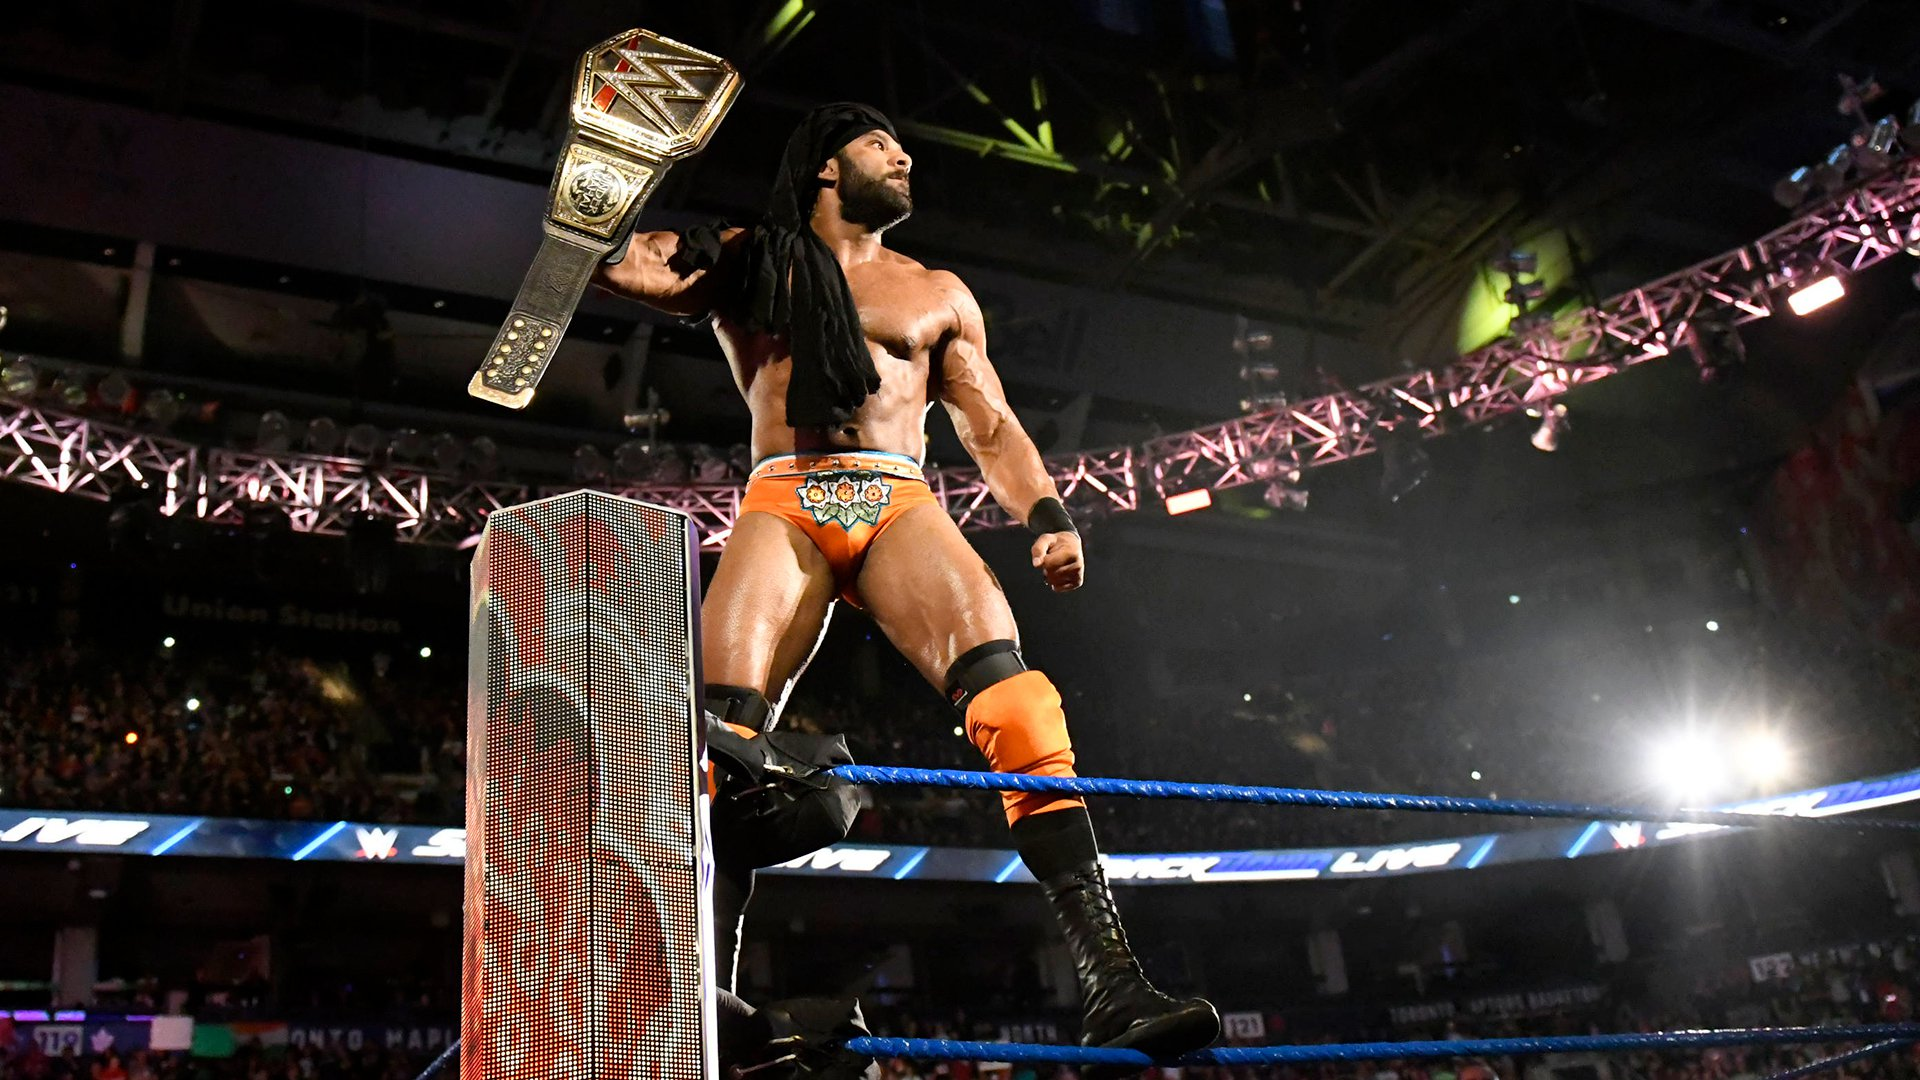 WWE Champion Jinder Mahal prepares for his non-title grudge match with Randy Orton.